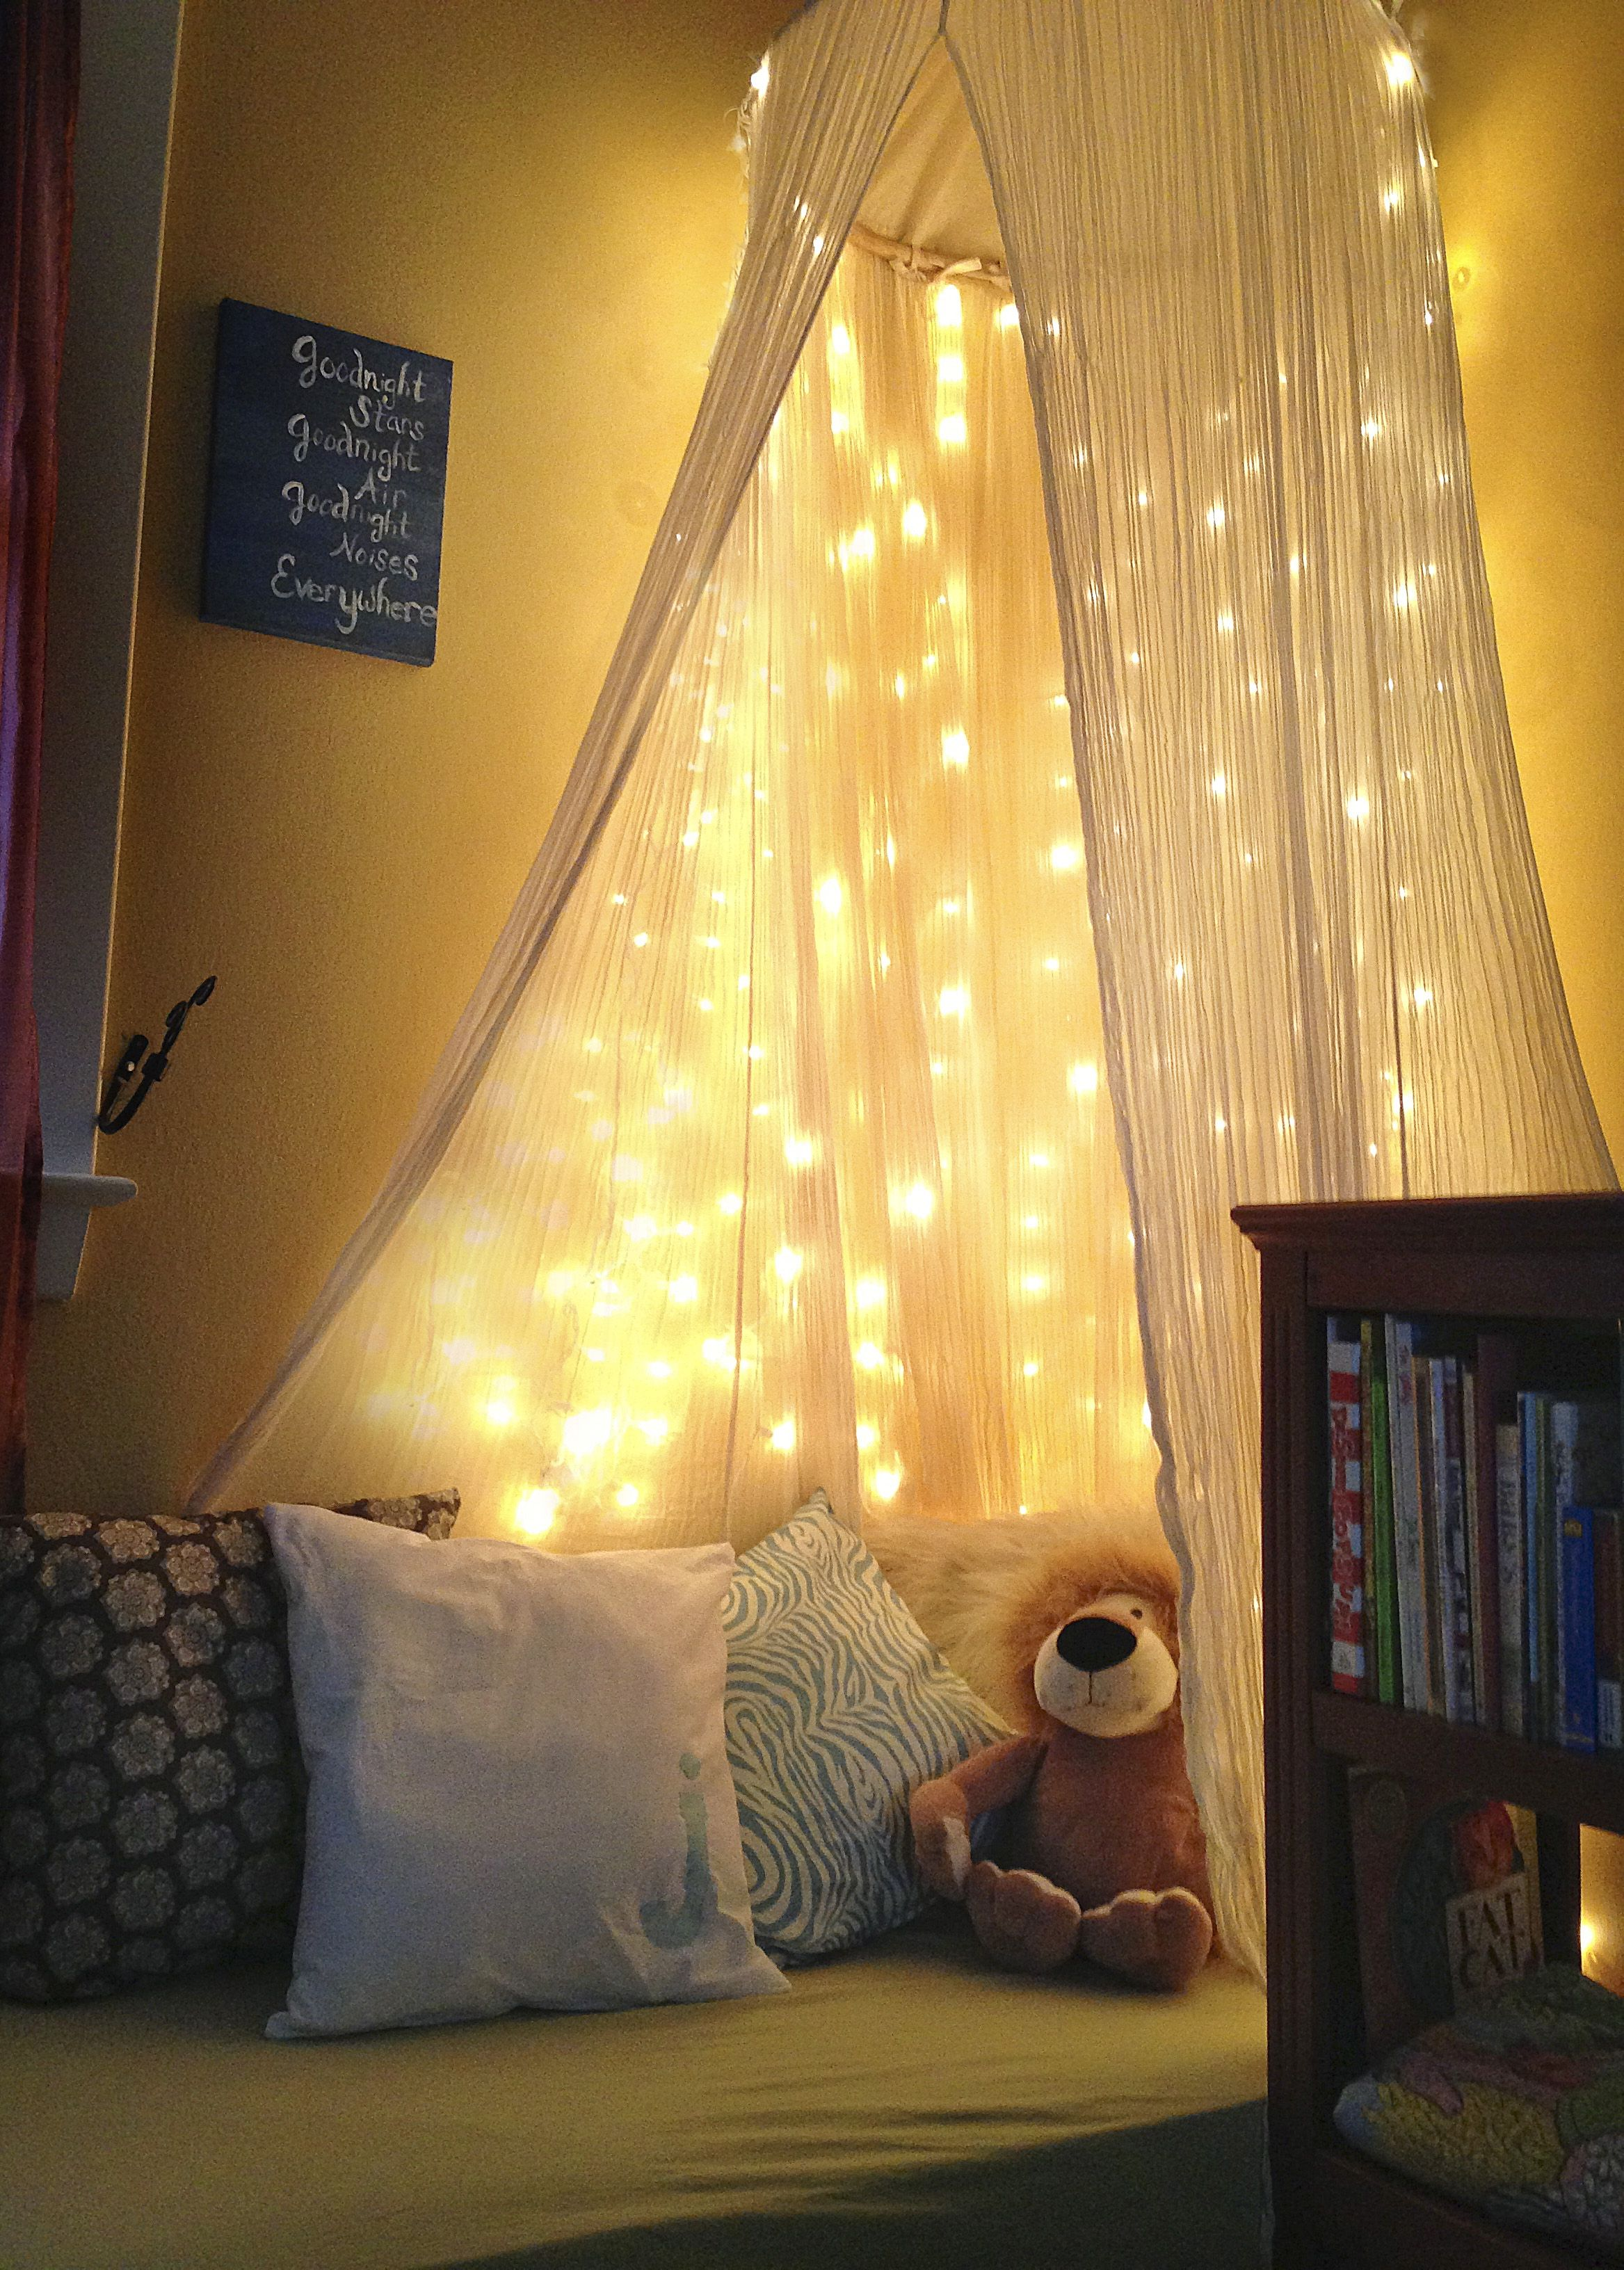 Reading Nook Floor Pillows 23 Amazing Canopies With String Lights Ideas